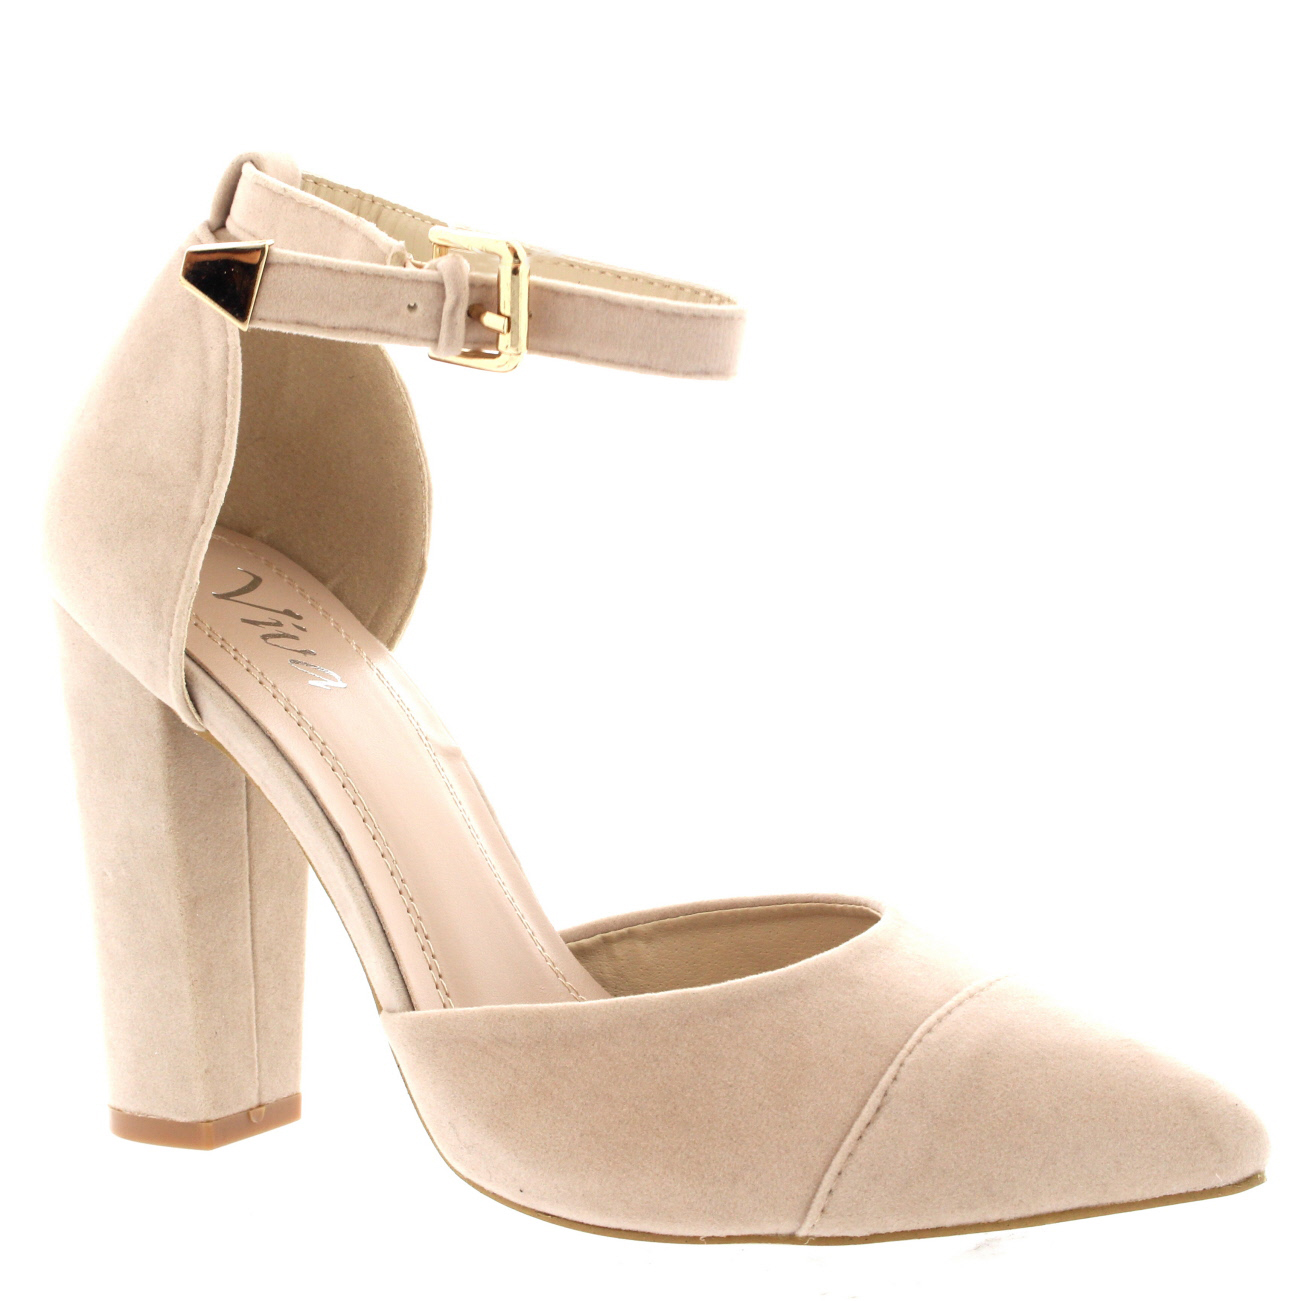 Womens Pointed Toe Office Shoes Block Heel Ankle Strap ...